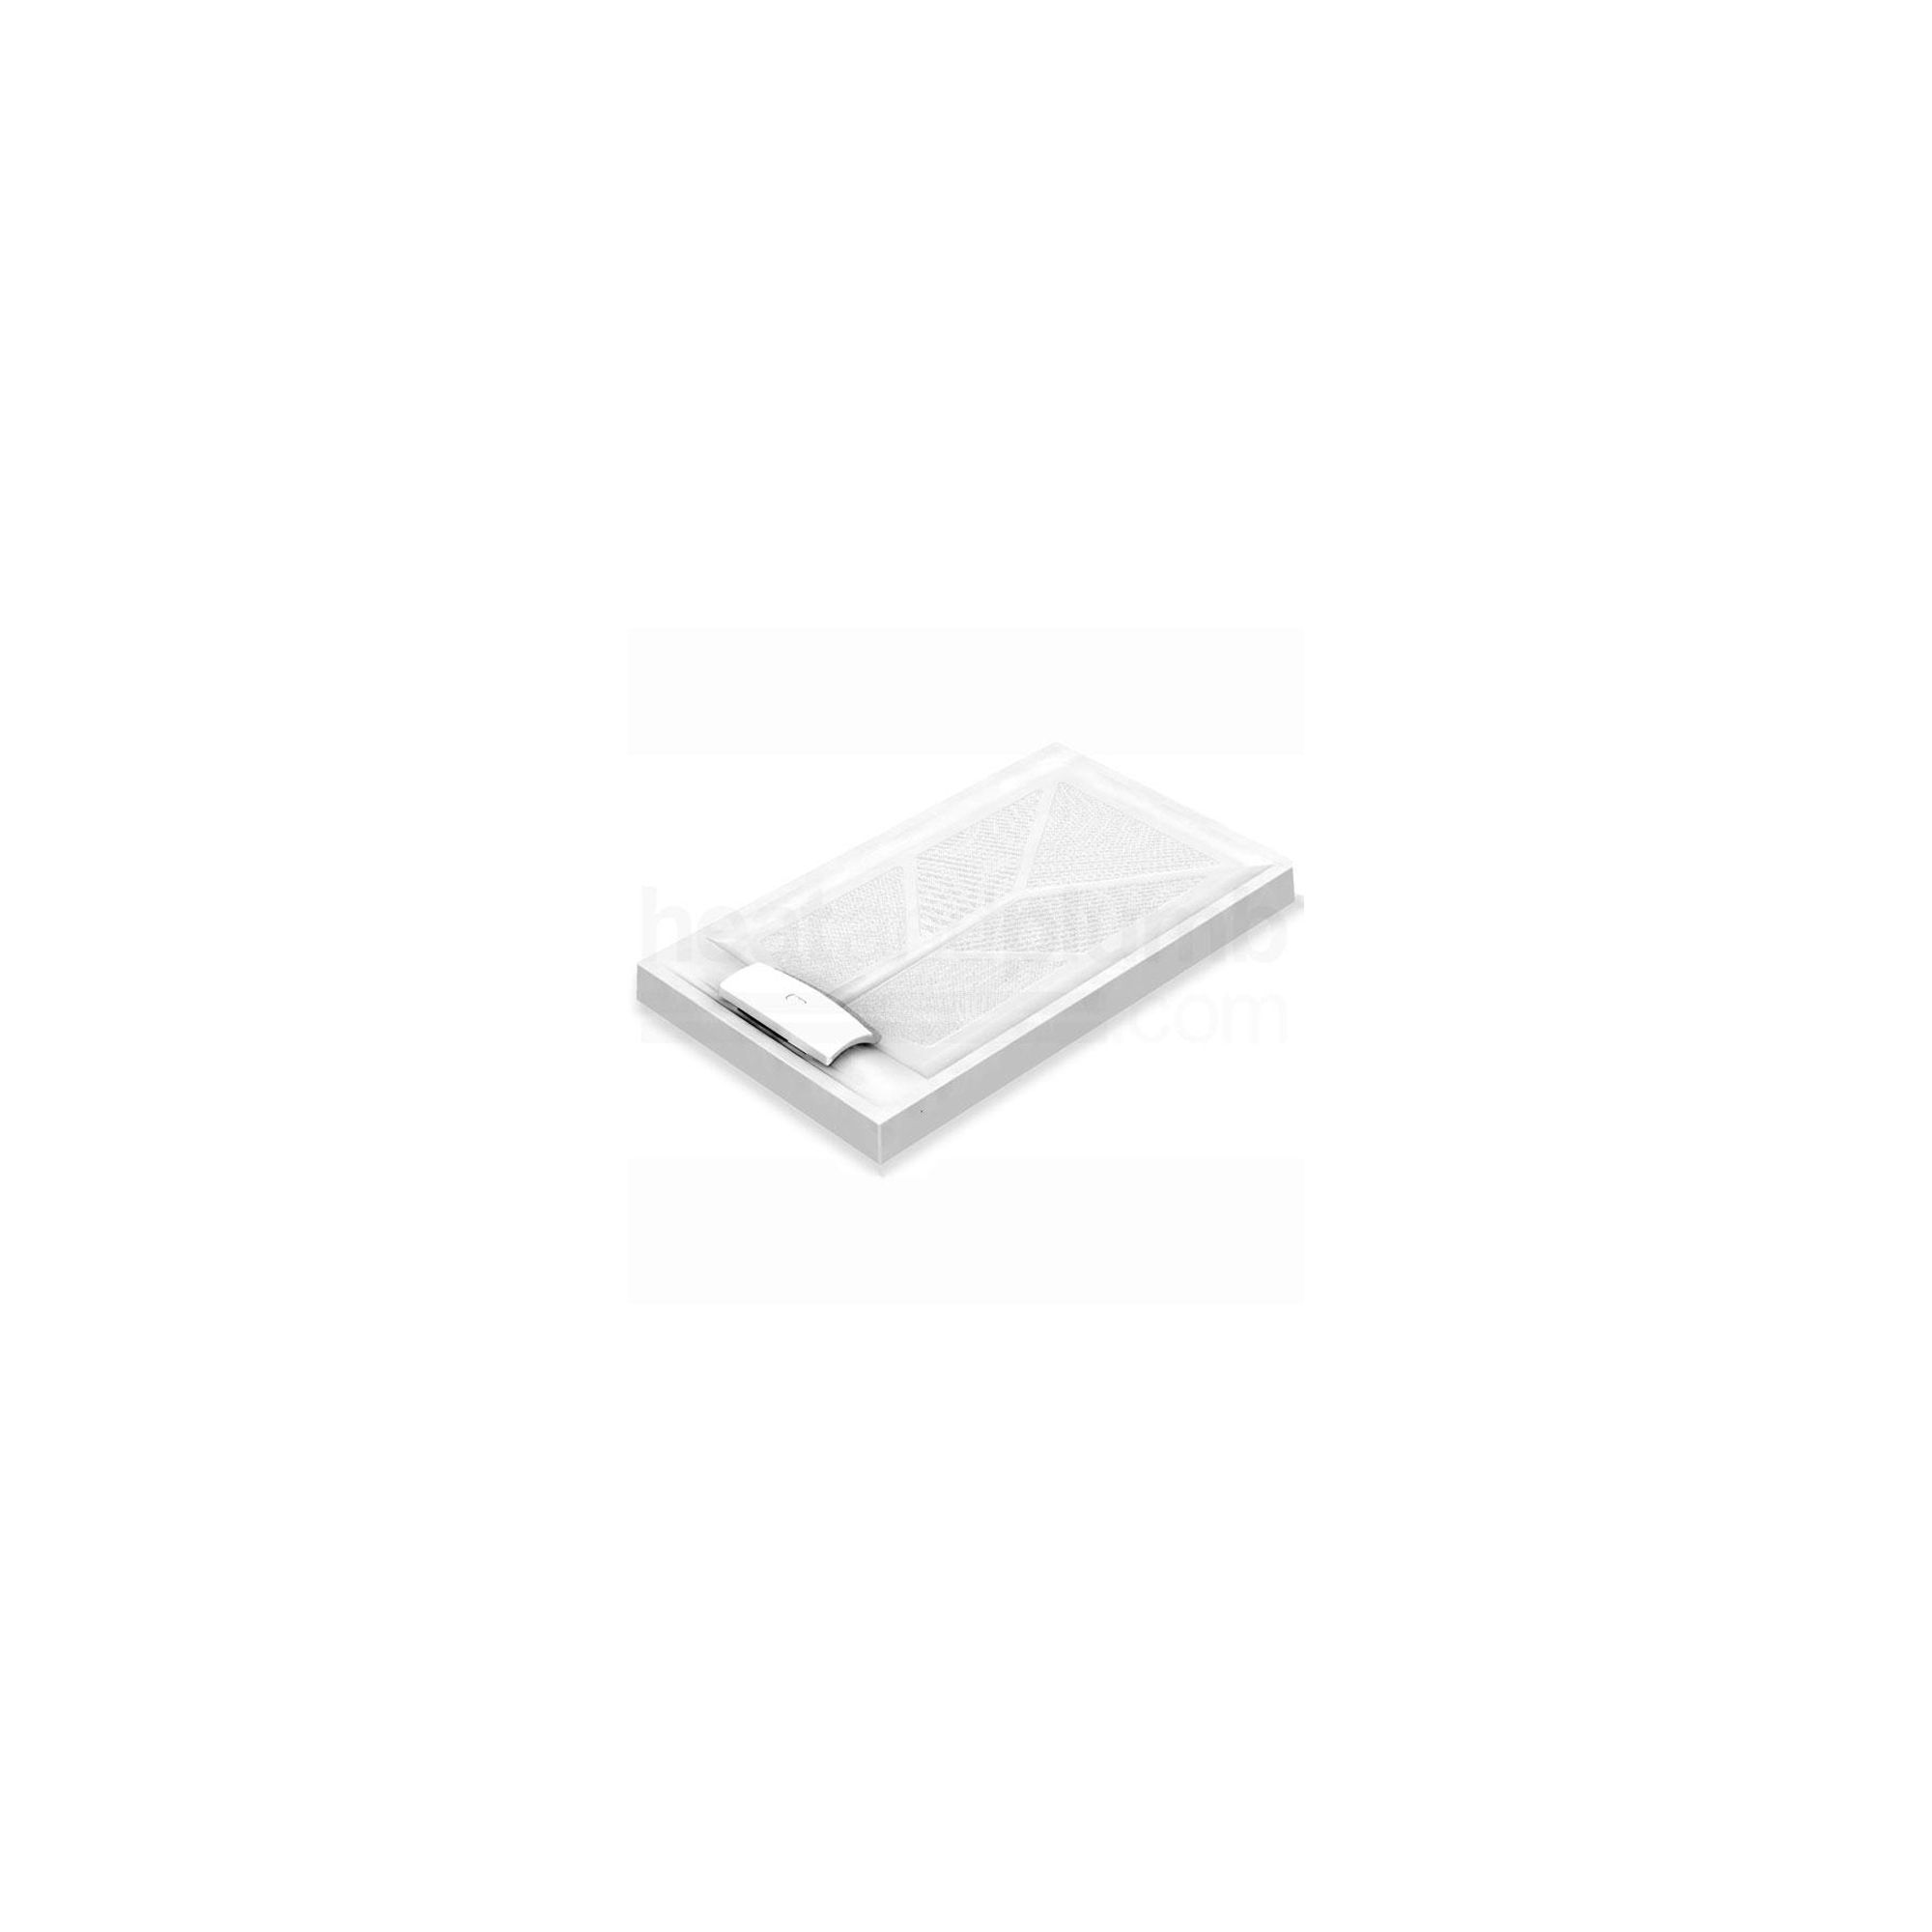 AKW Sulby Rectangular Shower Tray 1200mm x 820mm at Tesco Direct